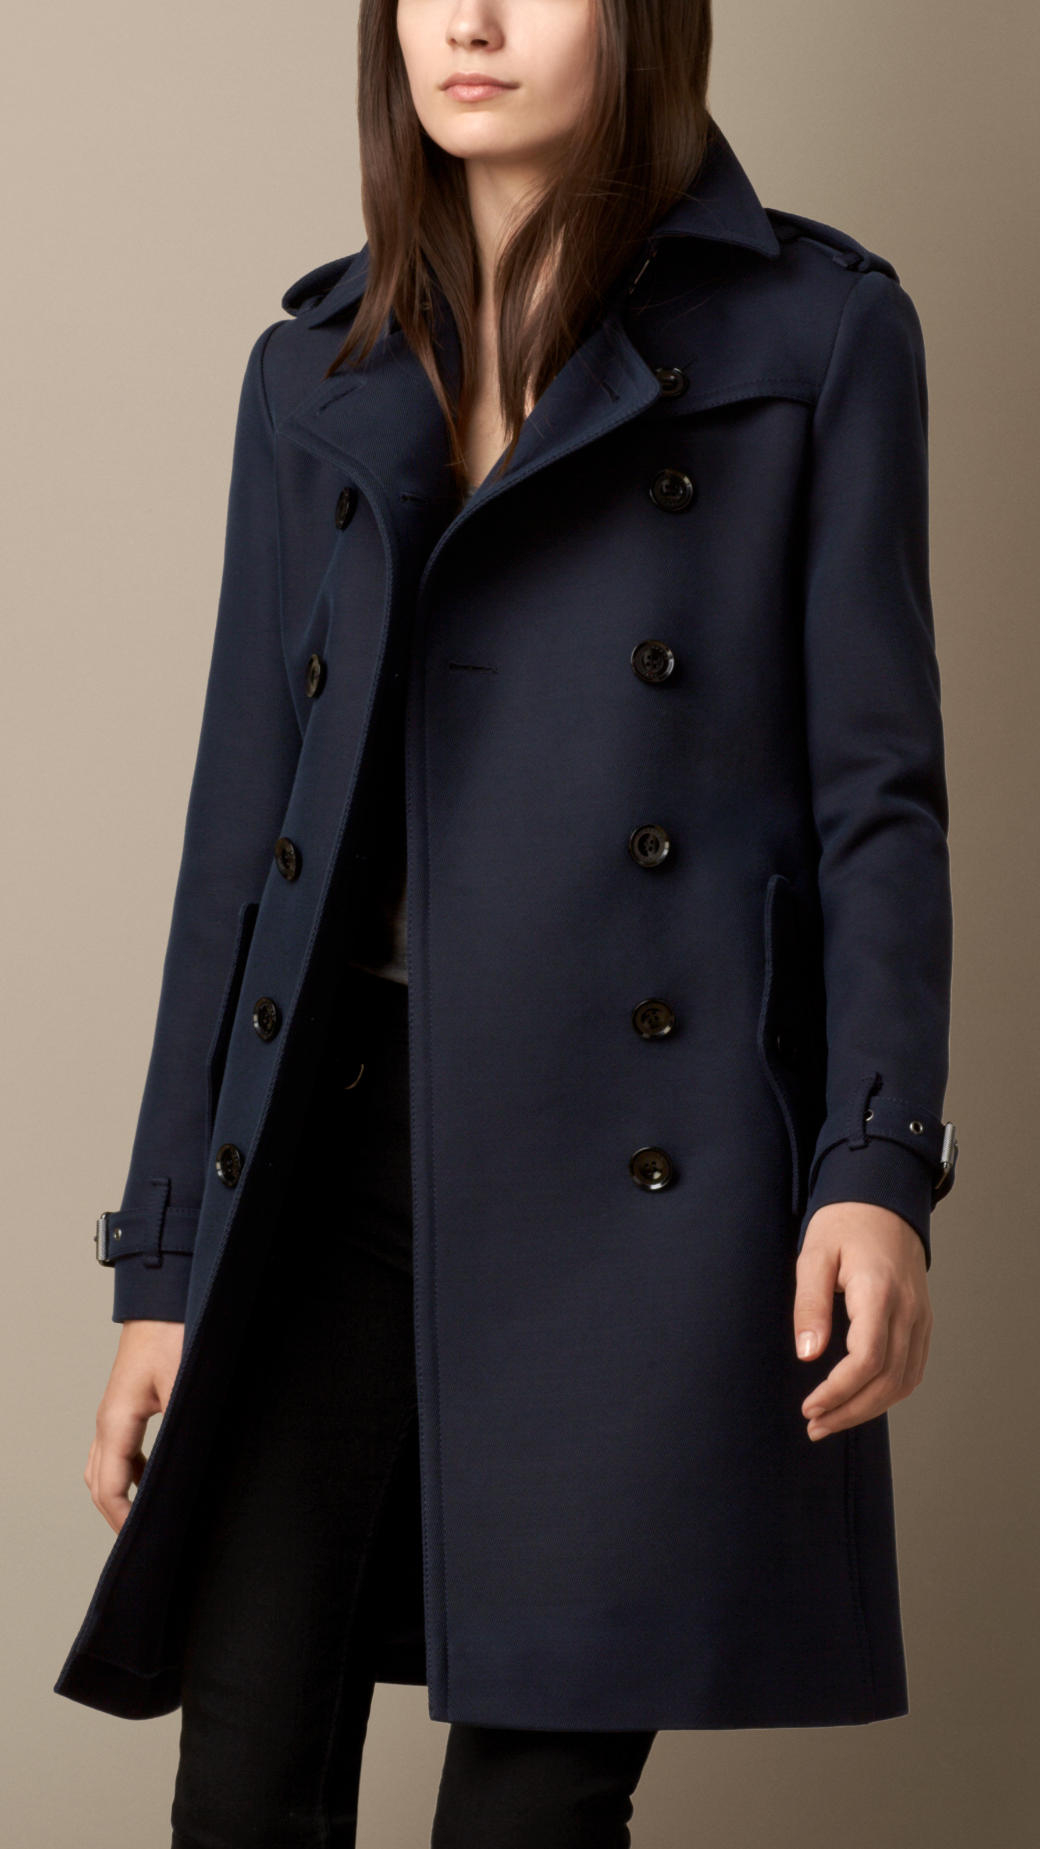 burberry cotton wool blend twill trench coat in blue navy. Black Bedroom Furniture Sets. Home Design Ideas